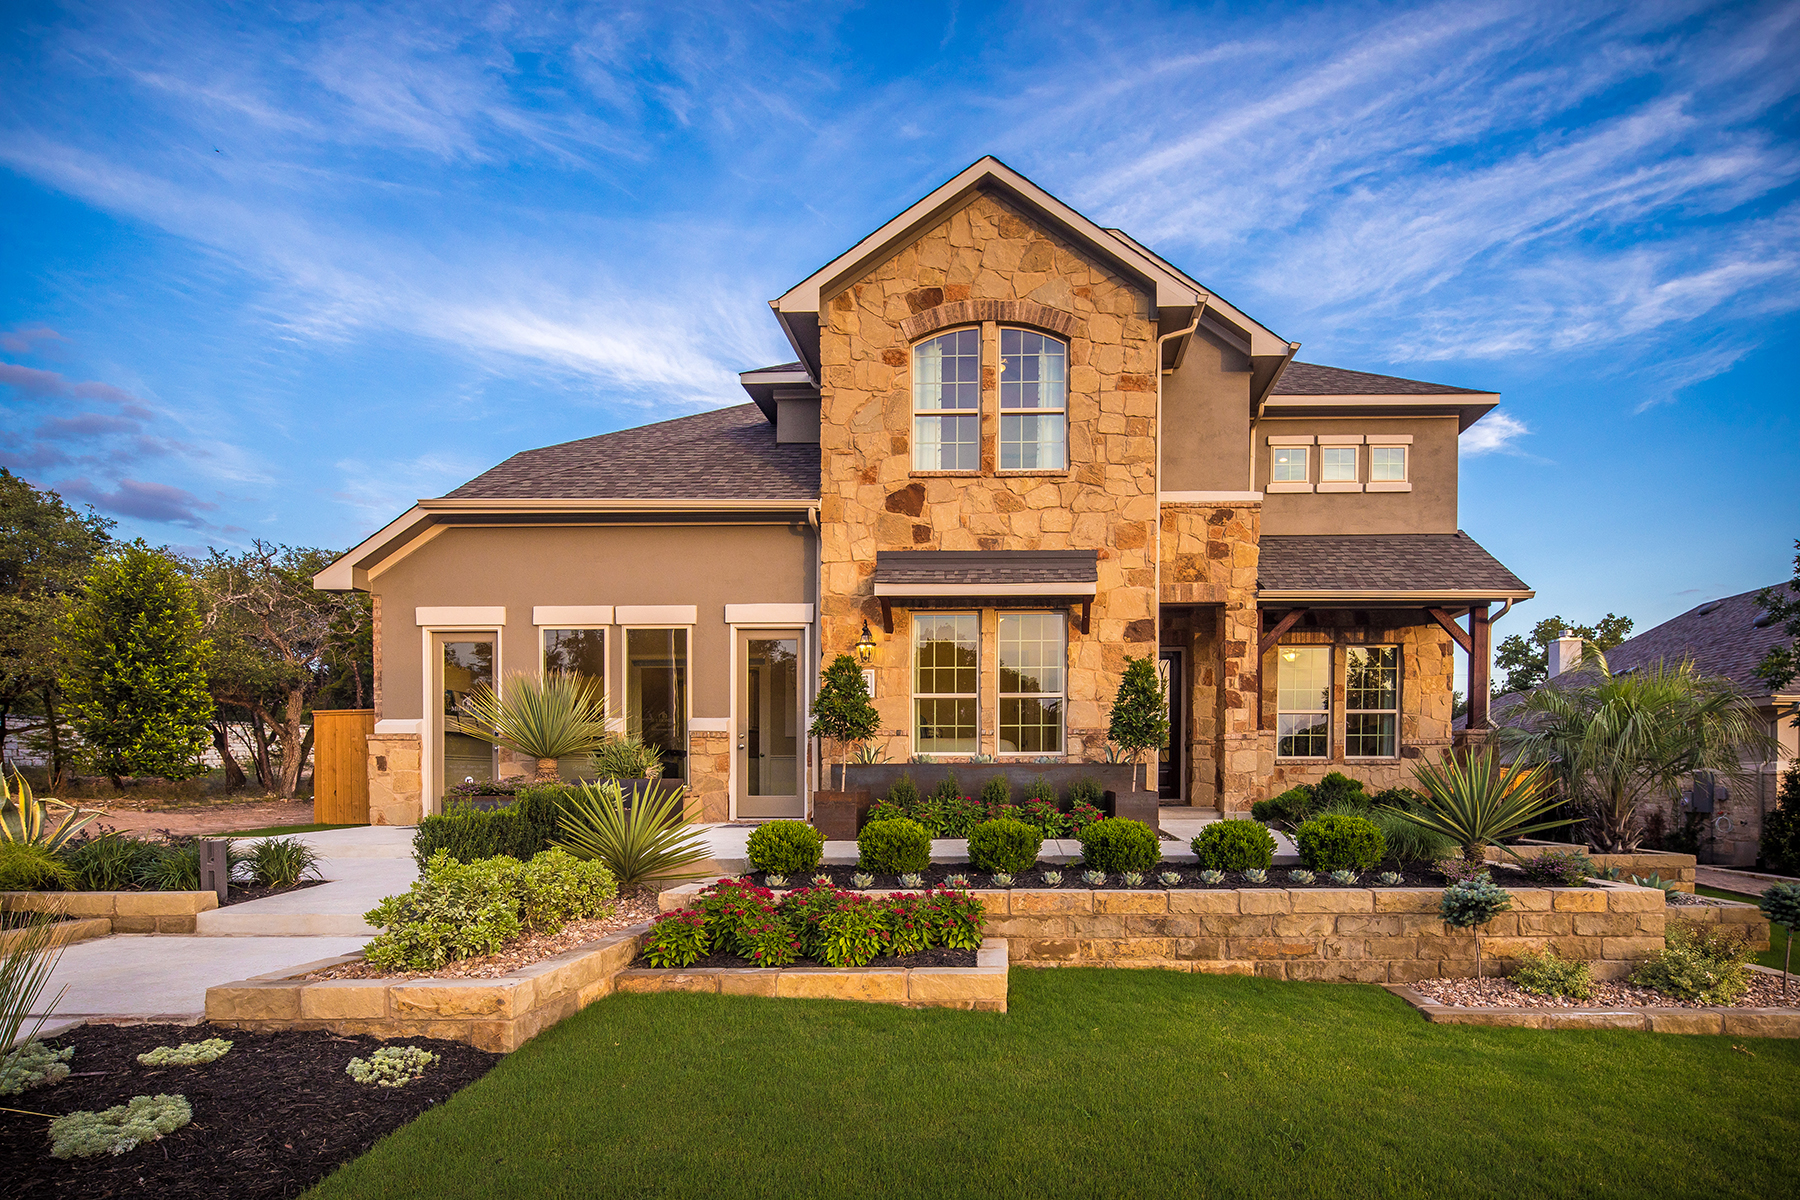 Highlands at Mayfield Ranch Model Home